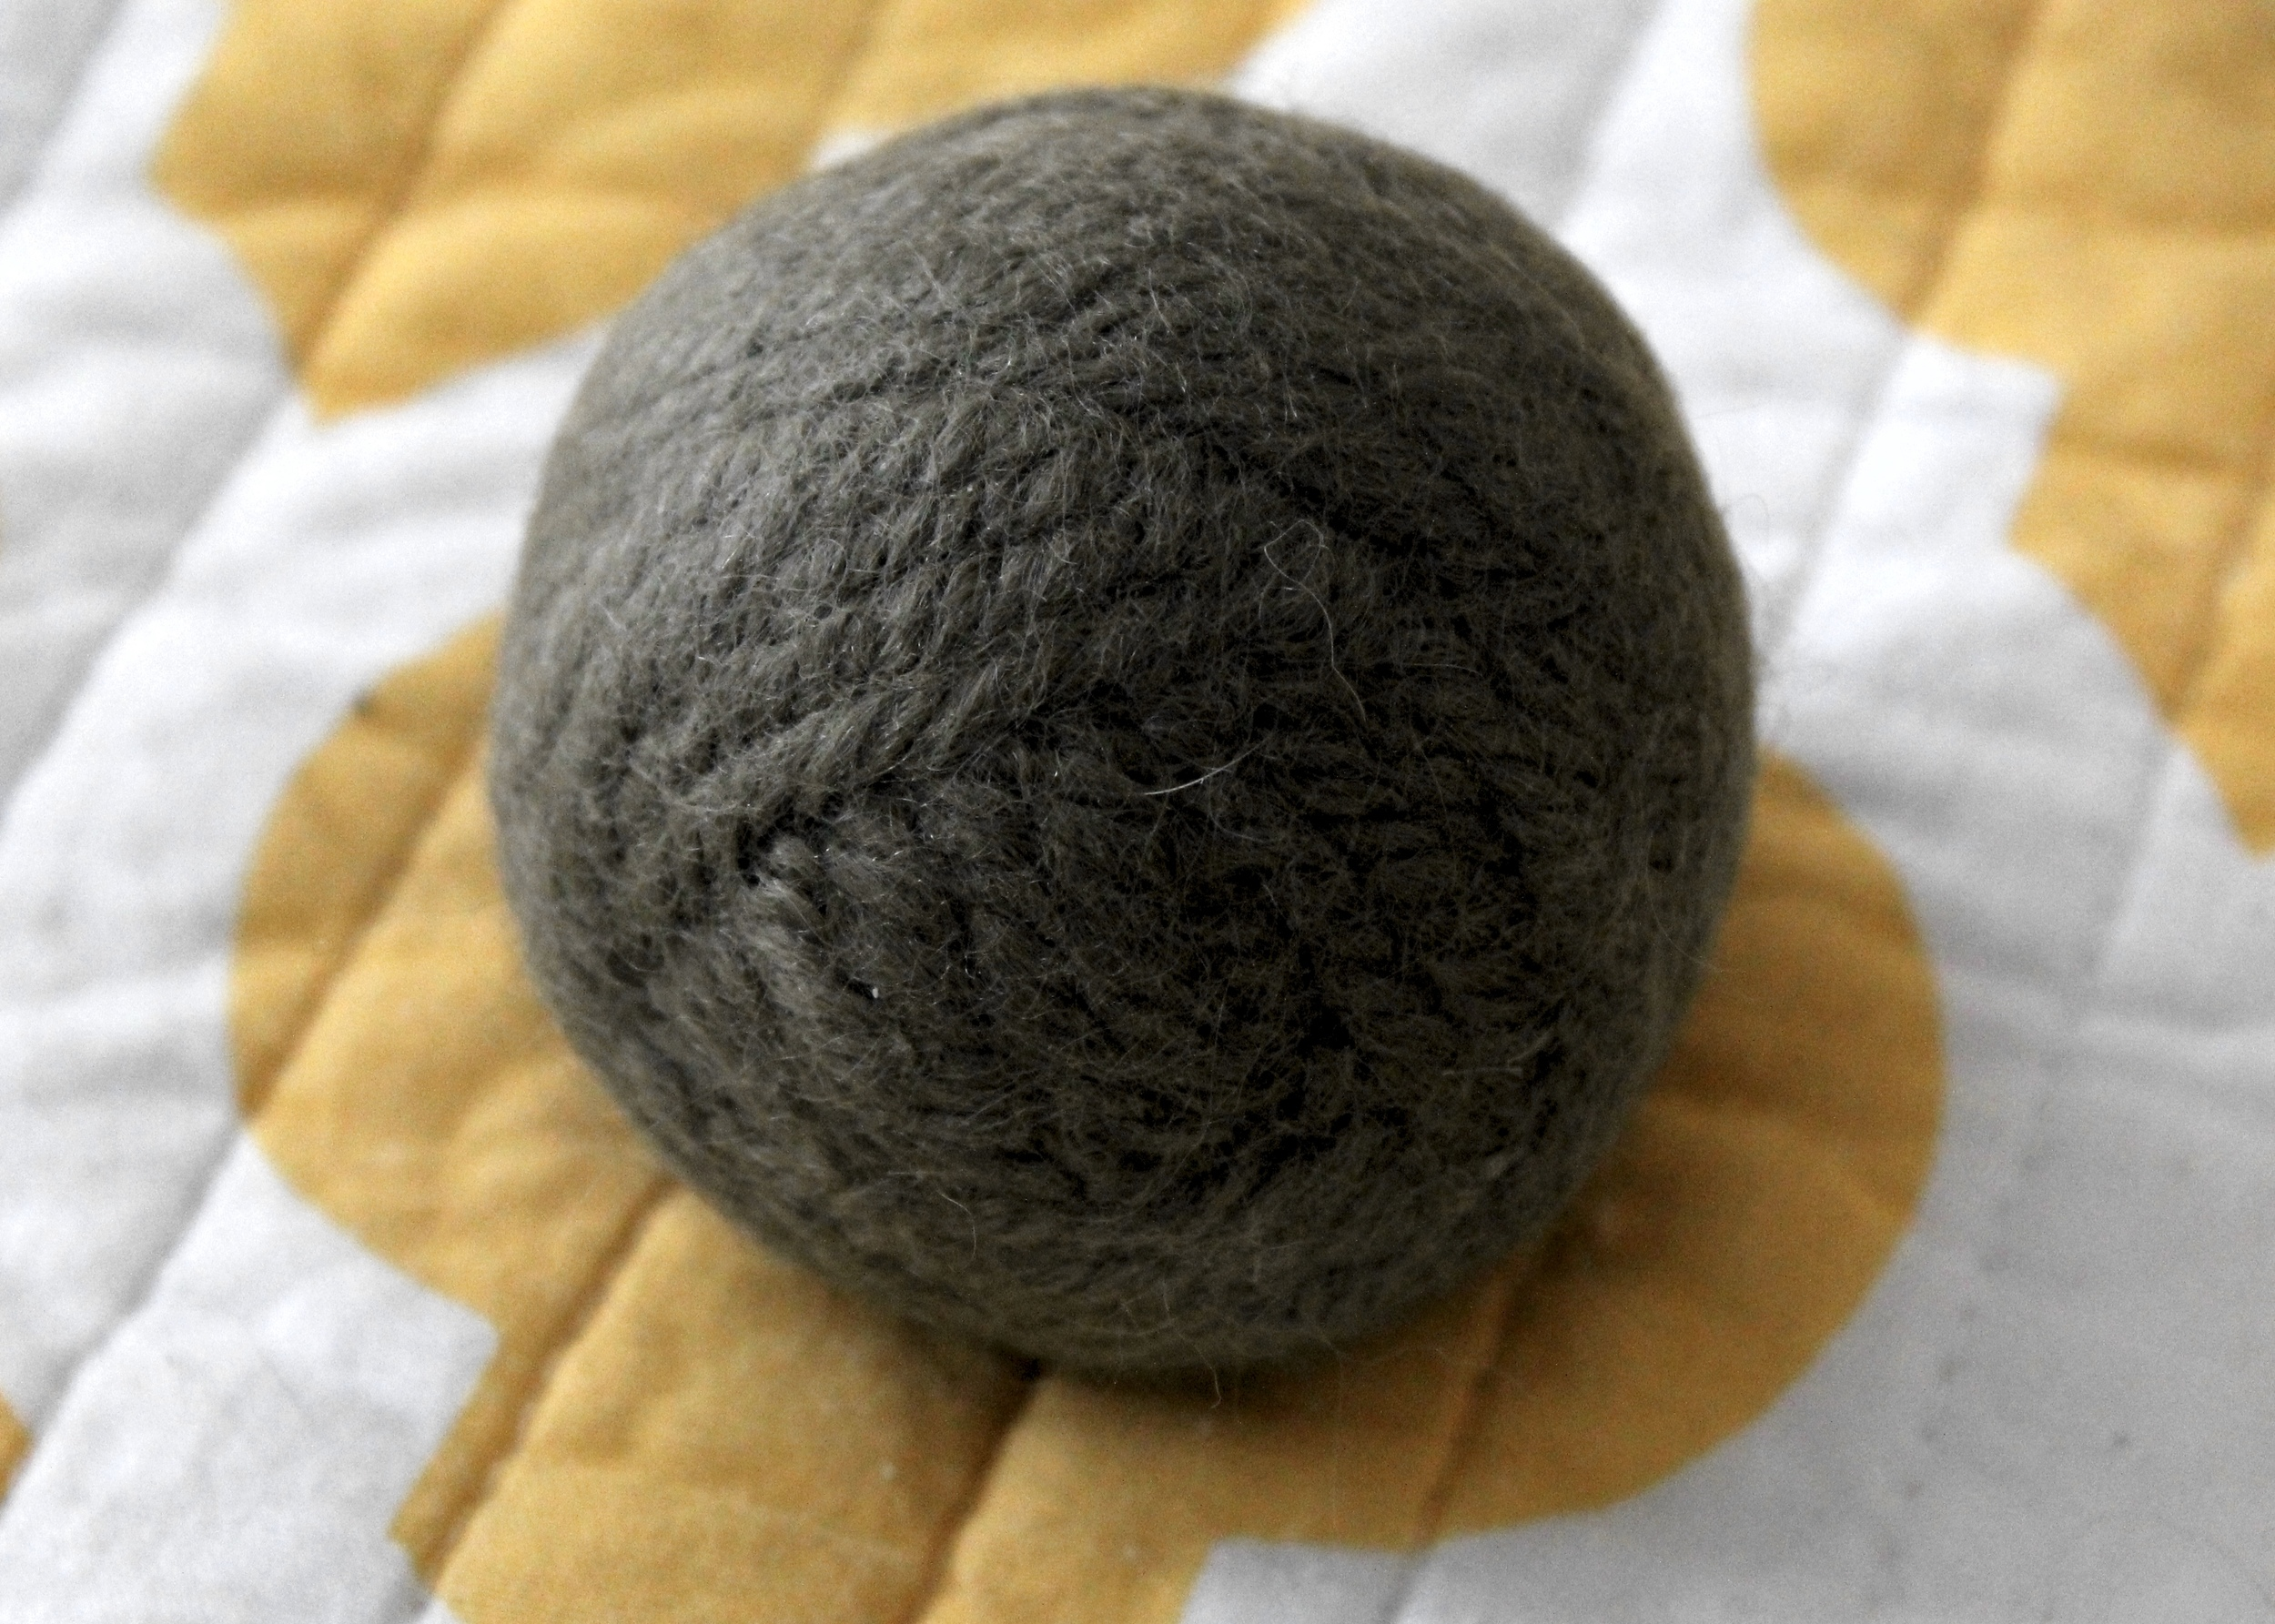 Gray homemade dryer ball made from wool yarn on a yellow and white background